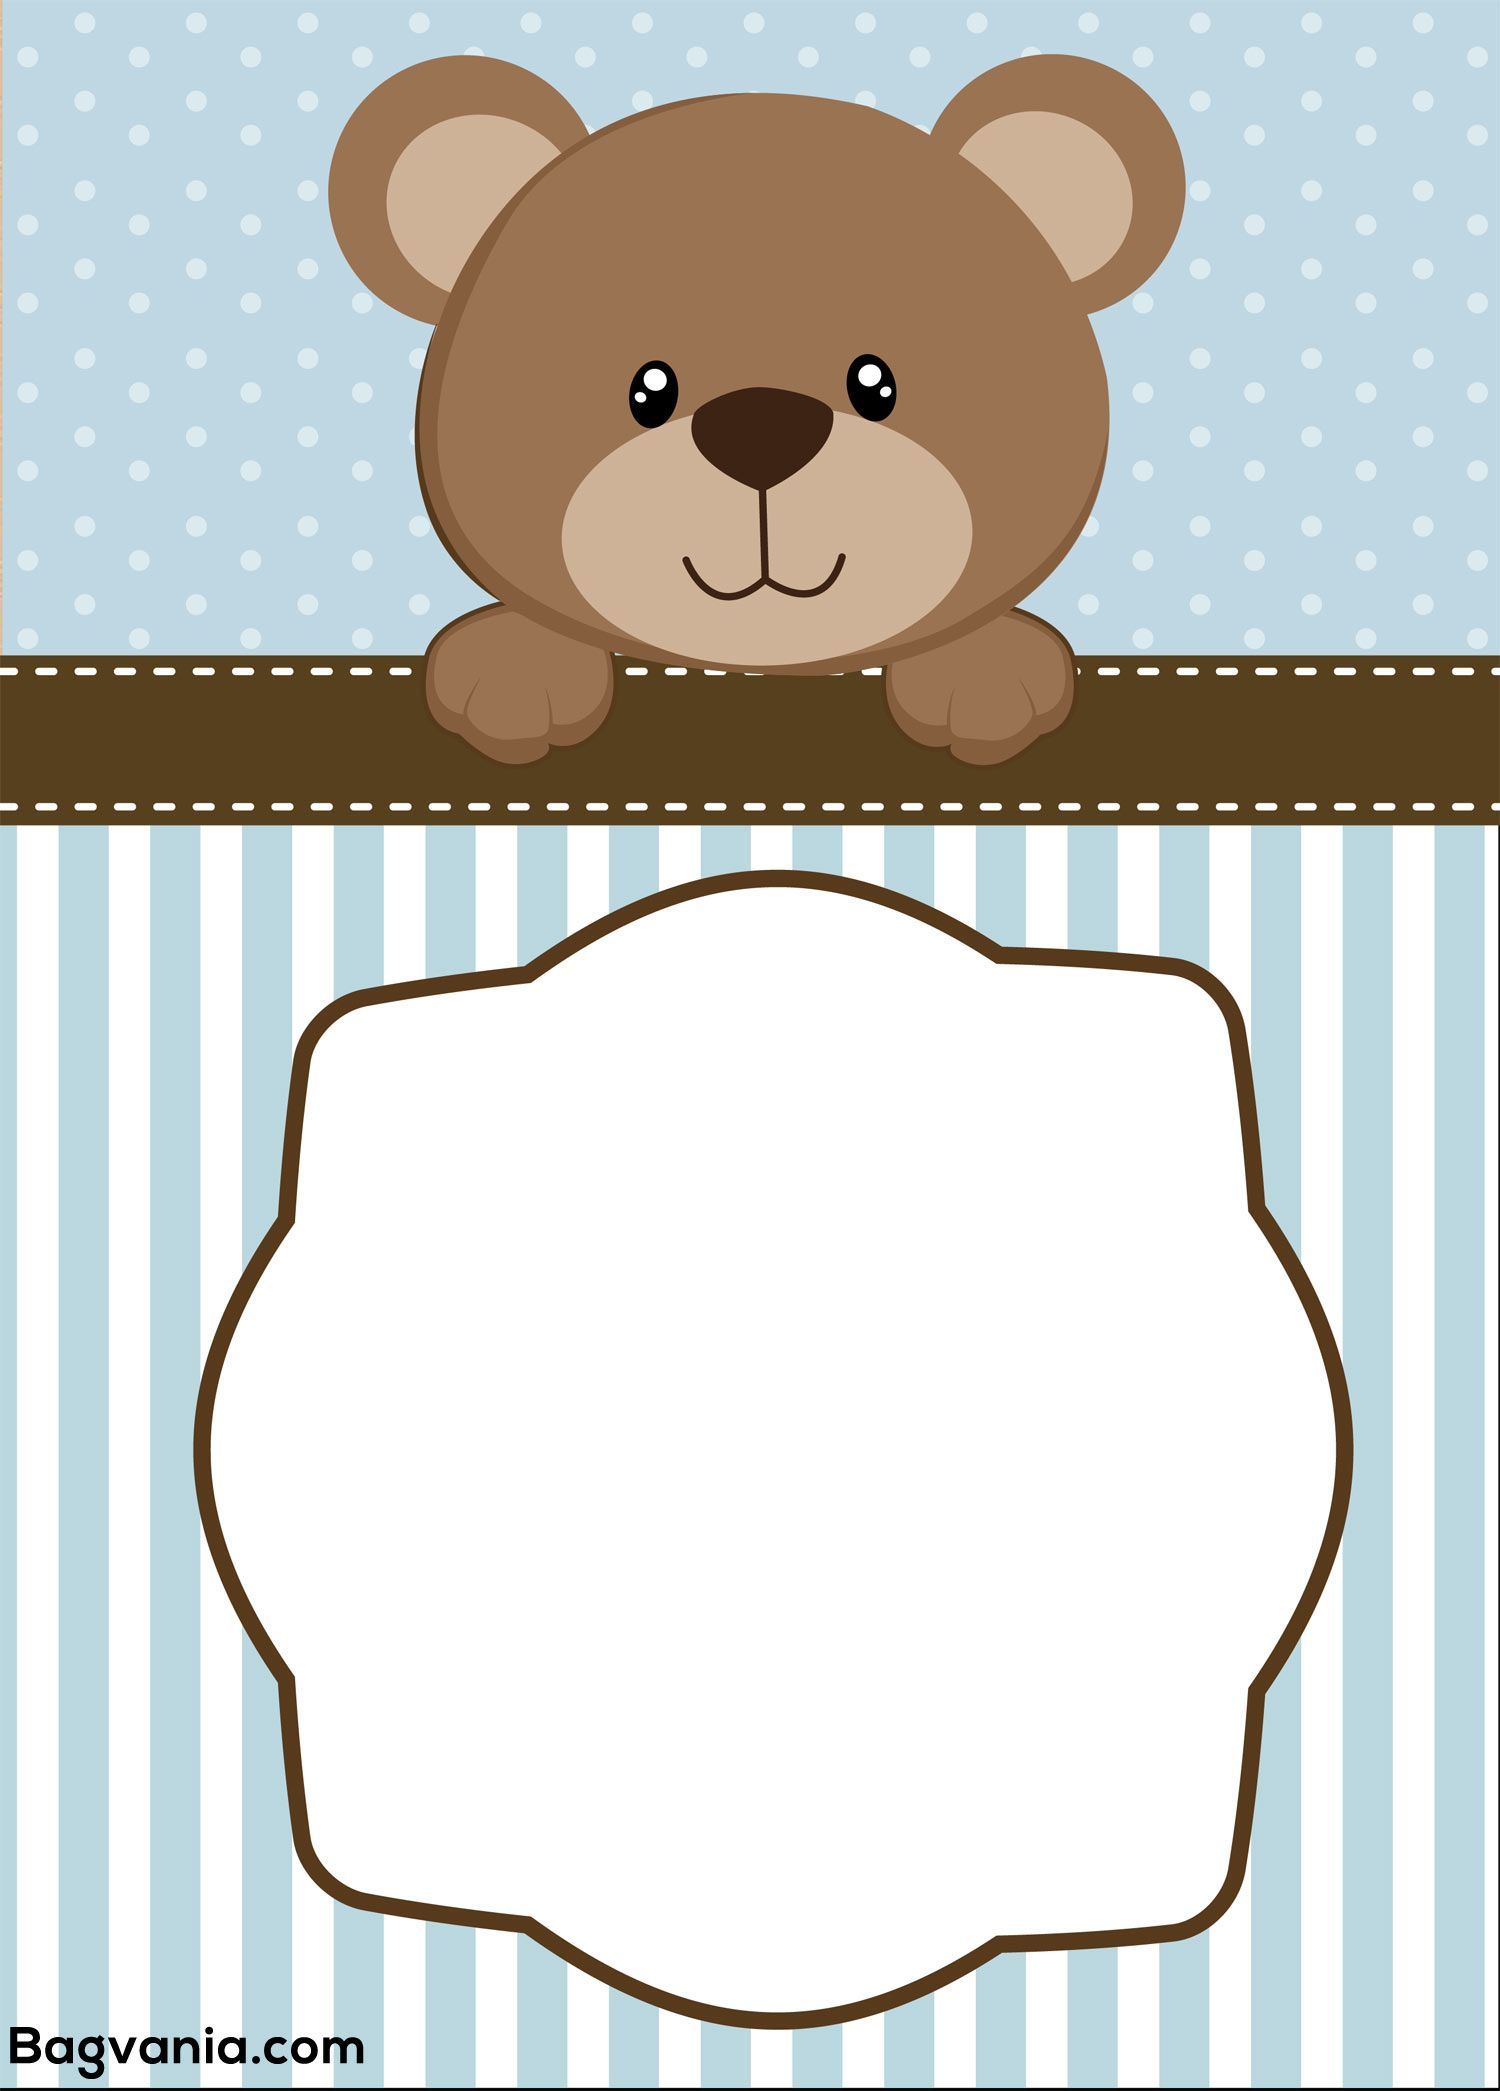 Download Free Teddy Bear Birthday Invitation Templates | FREE ...